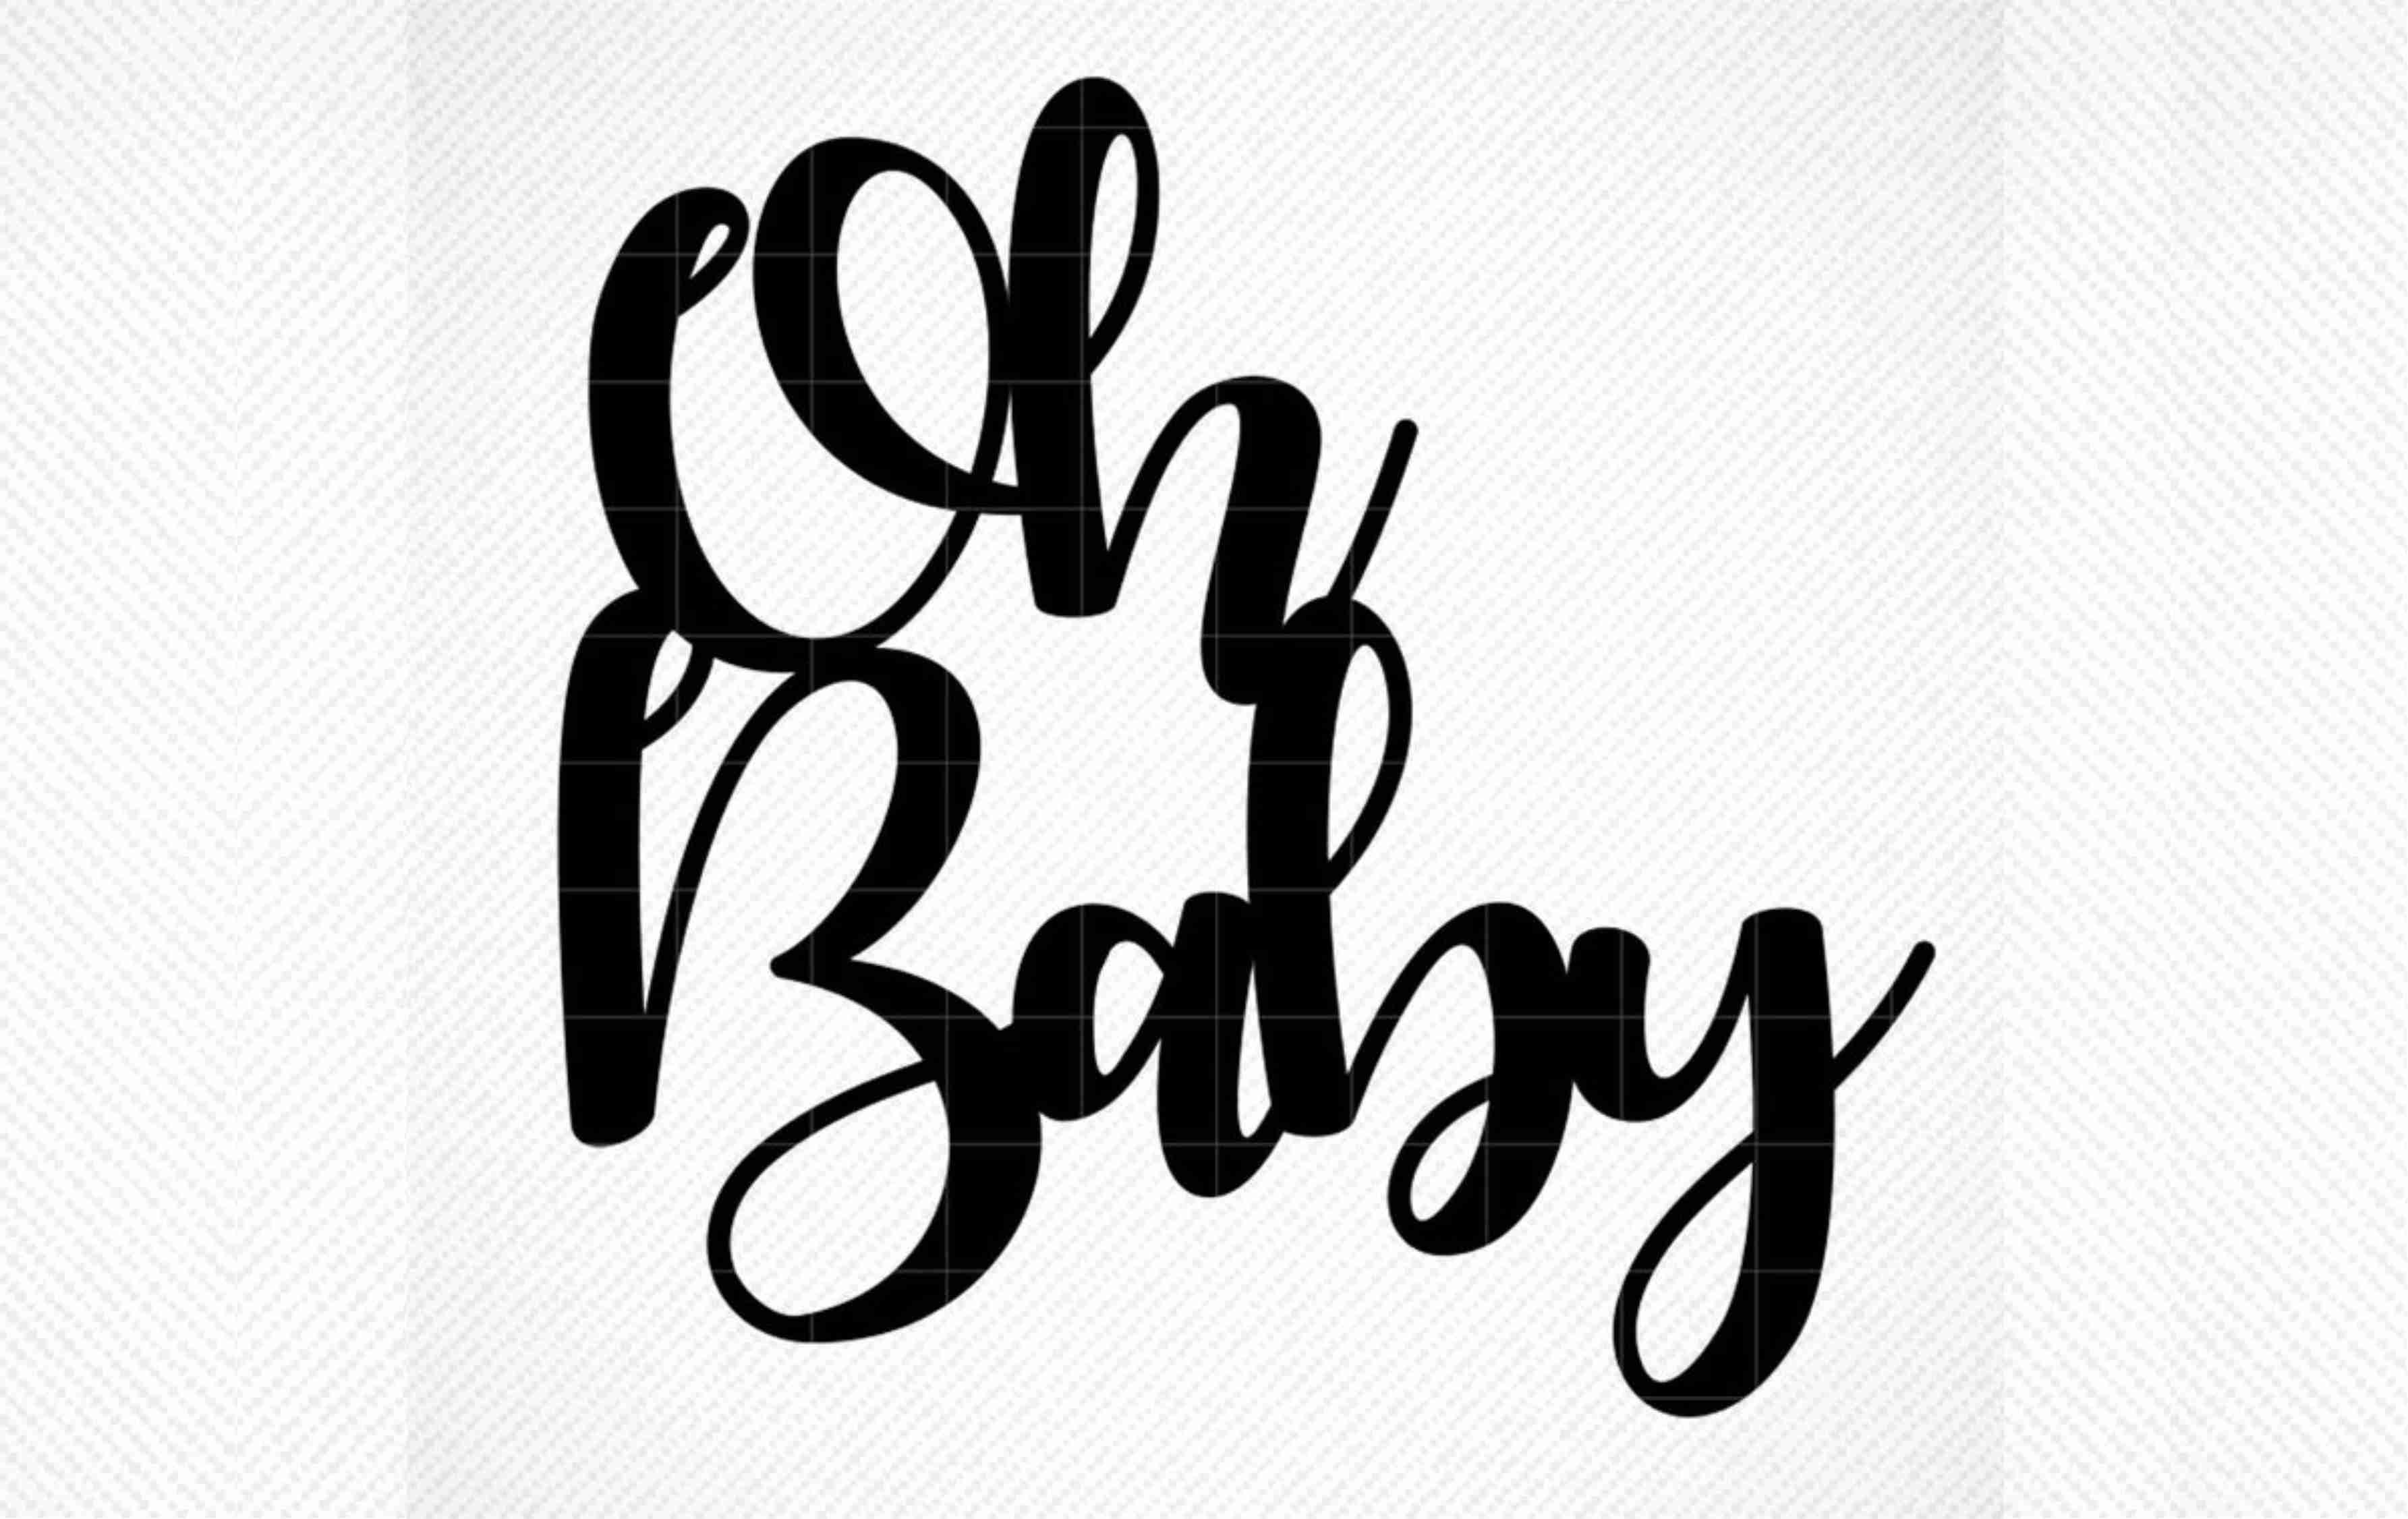 Download Free Oh Baby Cake Topper Graphic Graphic By Svg Den Creative Fabrica for Cricut Explore, Silhouette and other cutting machines.